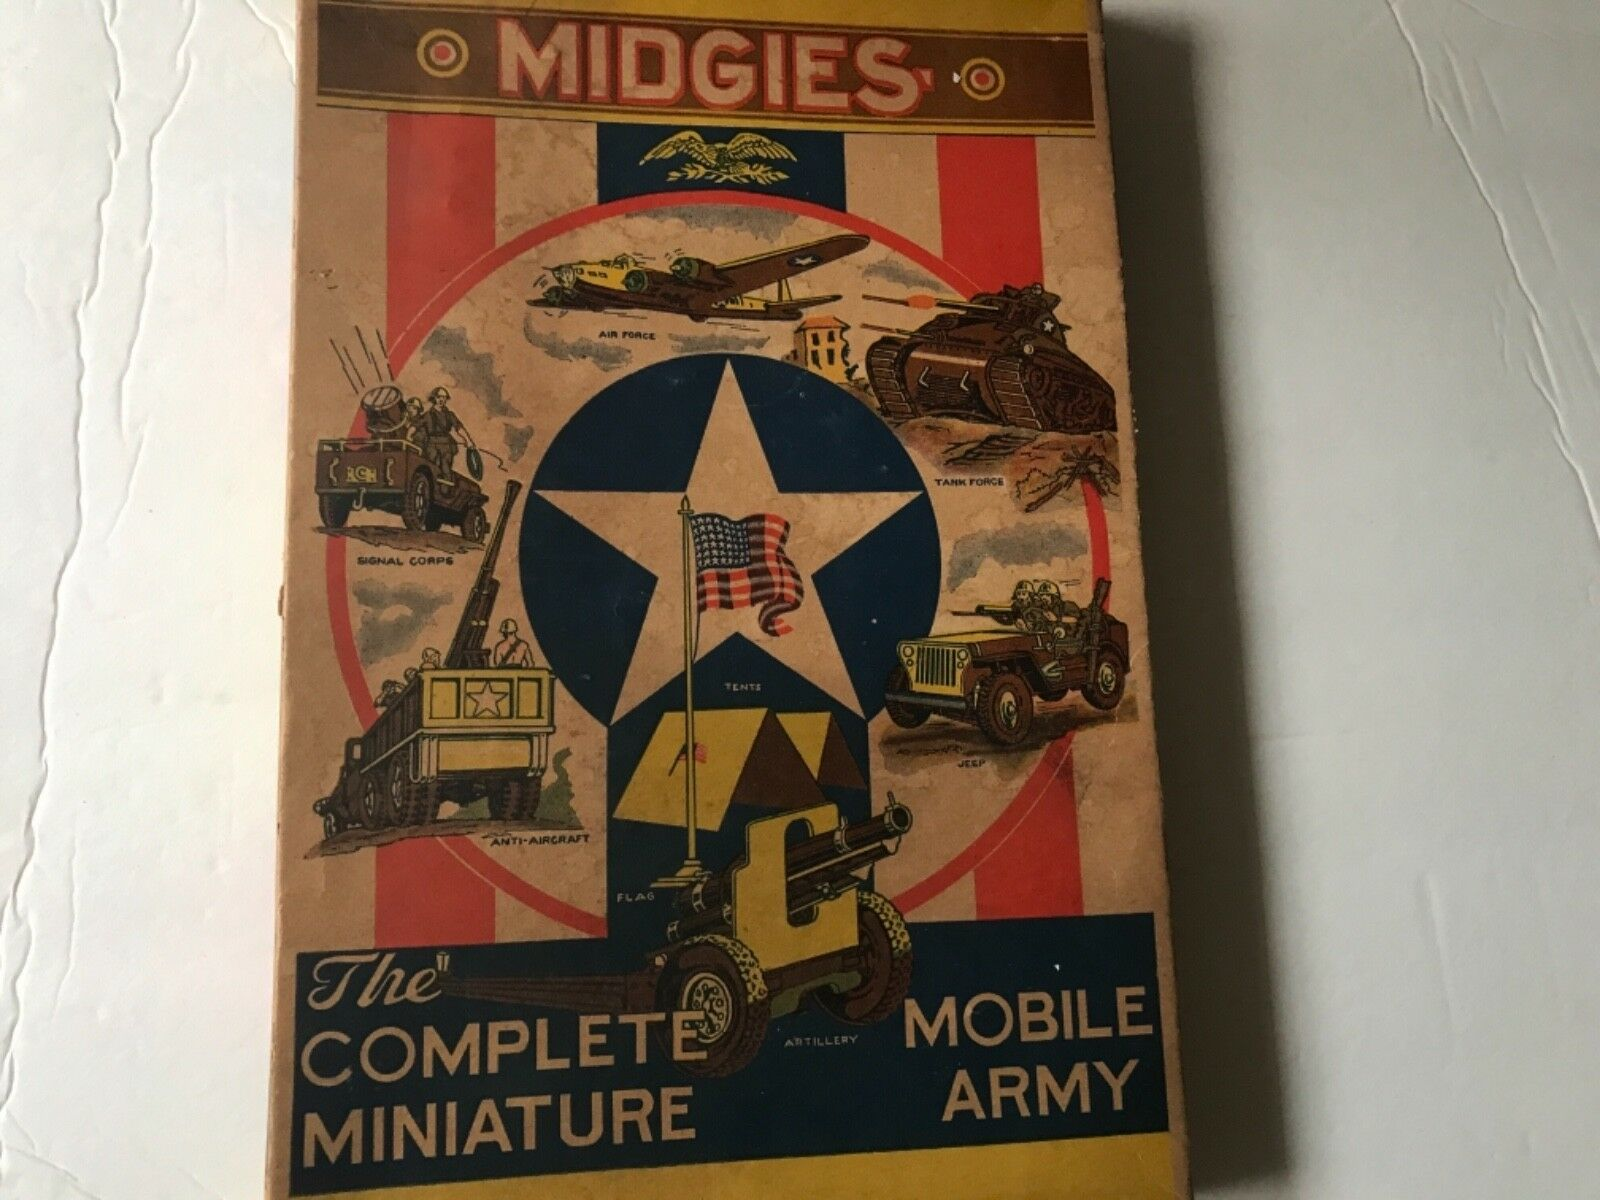 Jaymar 1940's Midgies Complete Miniature Miniature Miniature Mobile Army Rare larger Set In Box 528818